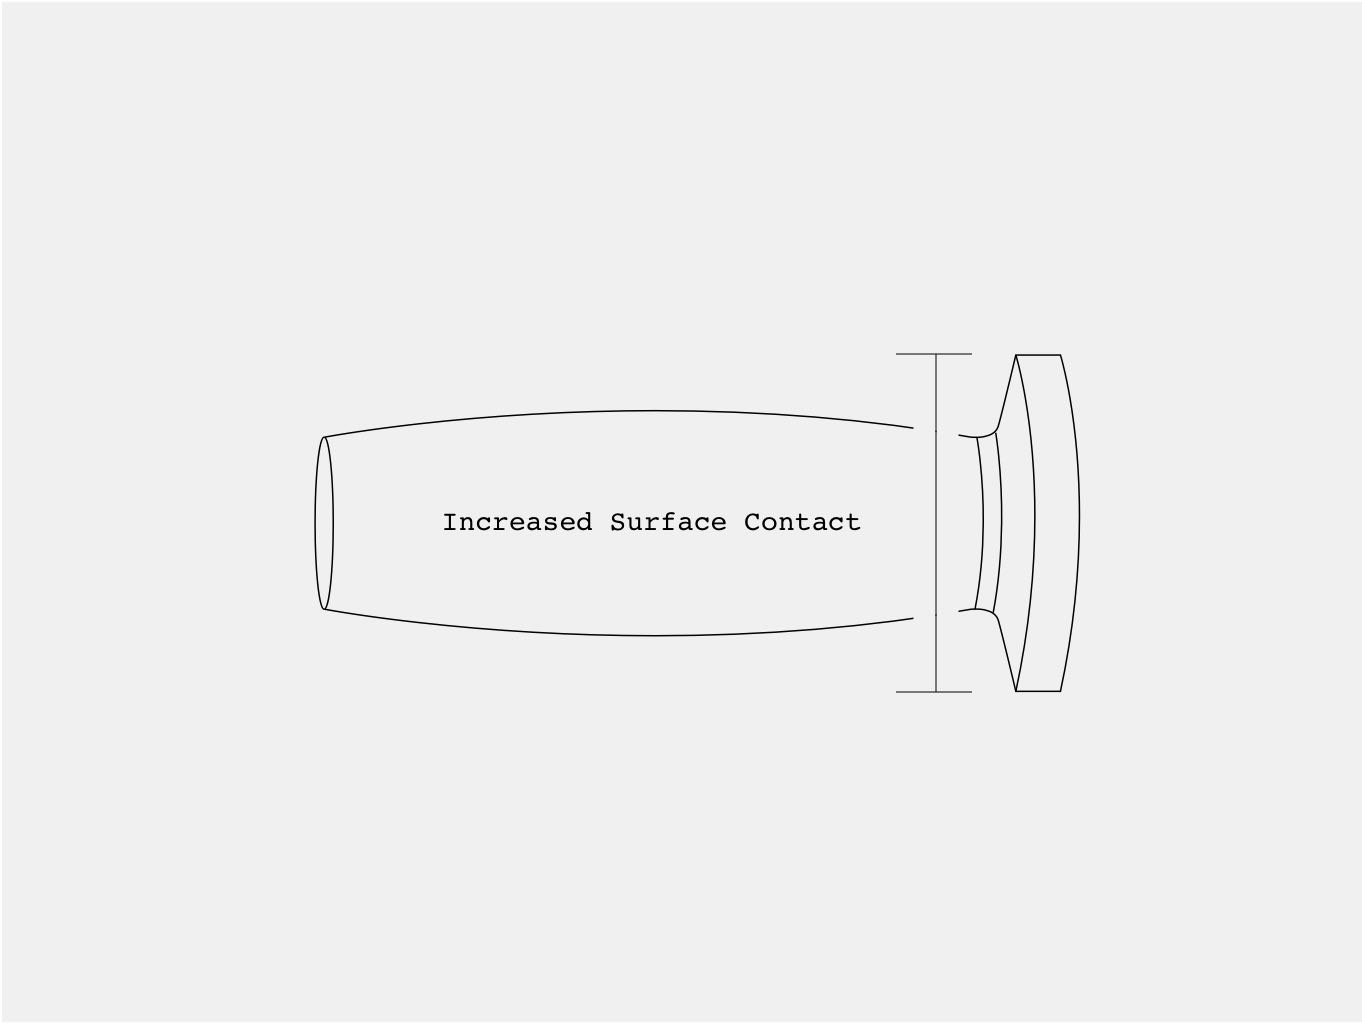 hight resolution of increased contact surface for less wear and tear